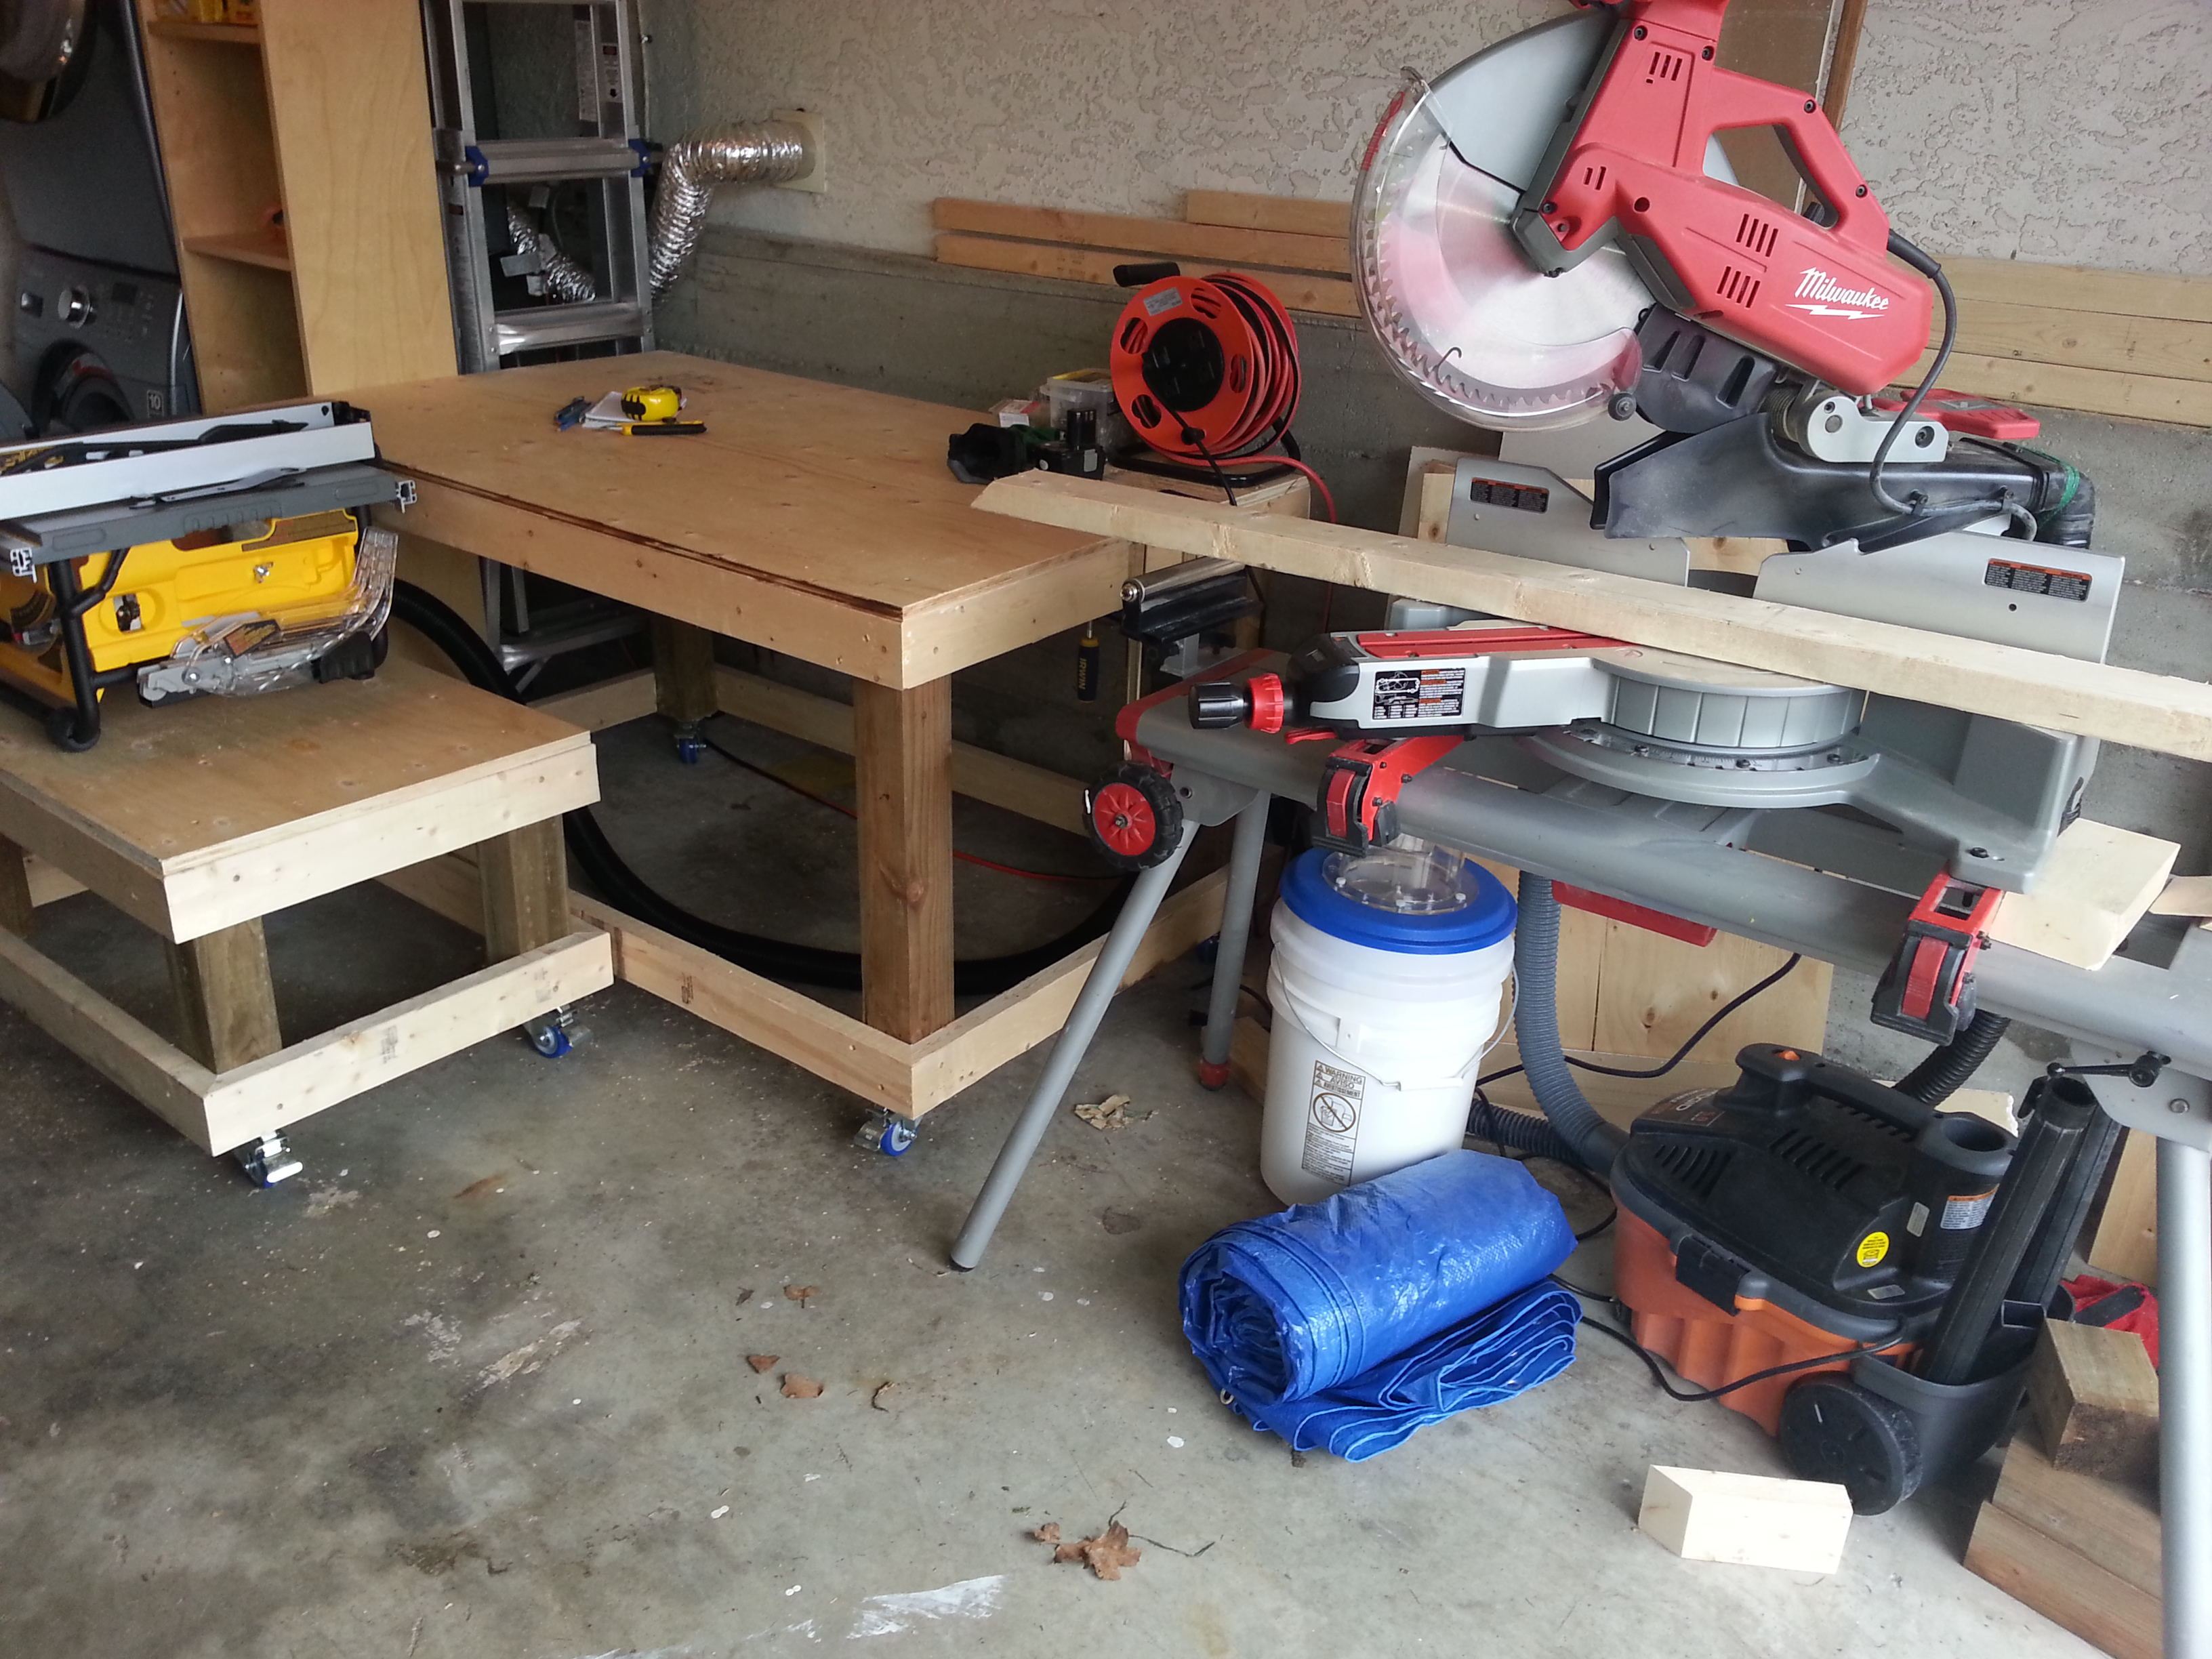 I made the work benches with casters on them so I can pull them out and position them for better space.